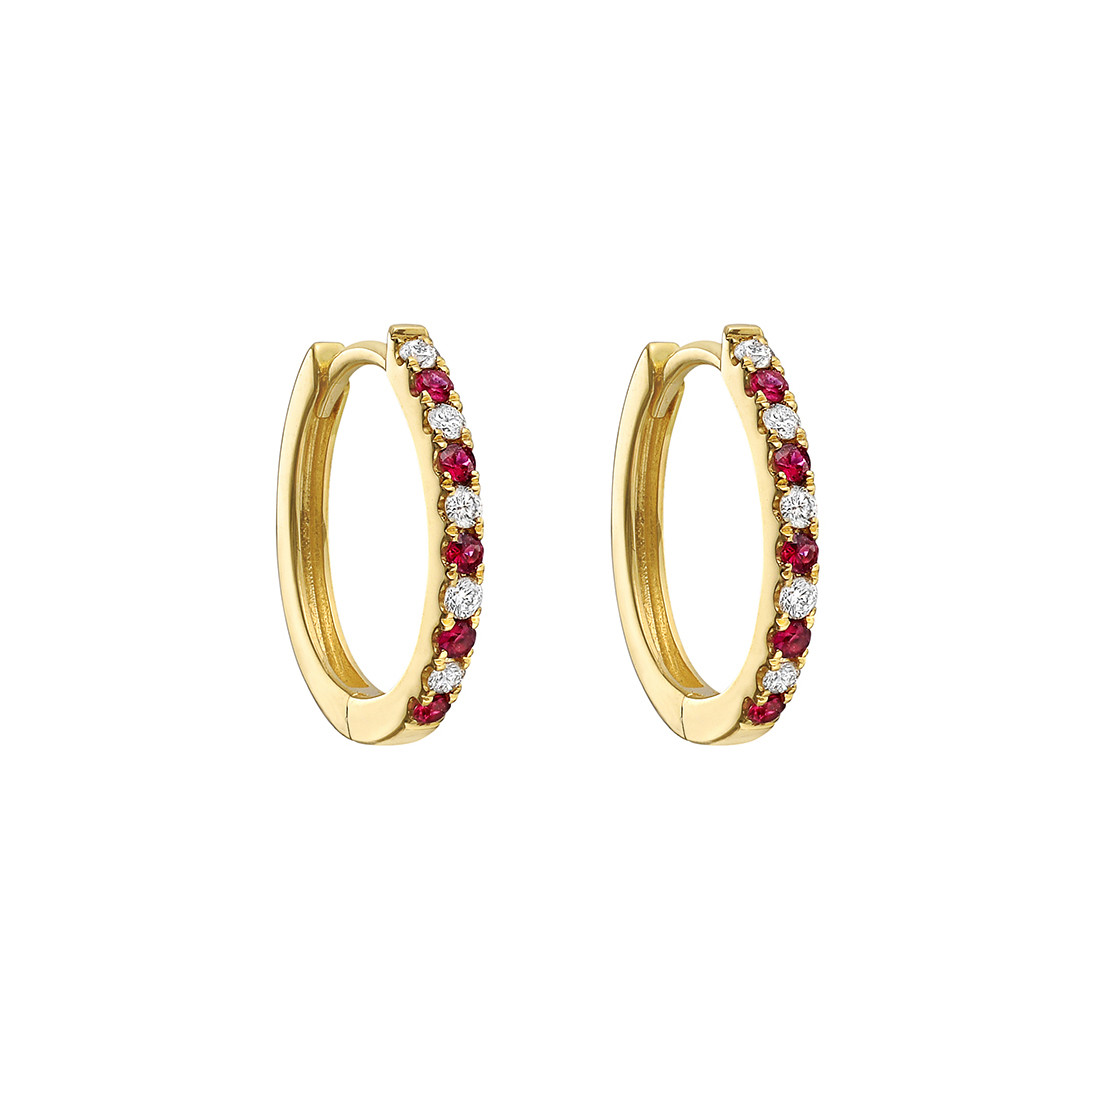 Circular Shaped Hoop Earrings Showcasing Round Rubies Alternating With Diamonds G Set To The Front Of High Polished 18k Yellow Gold